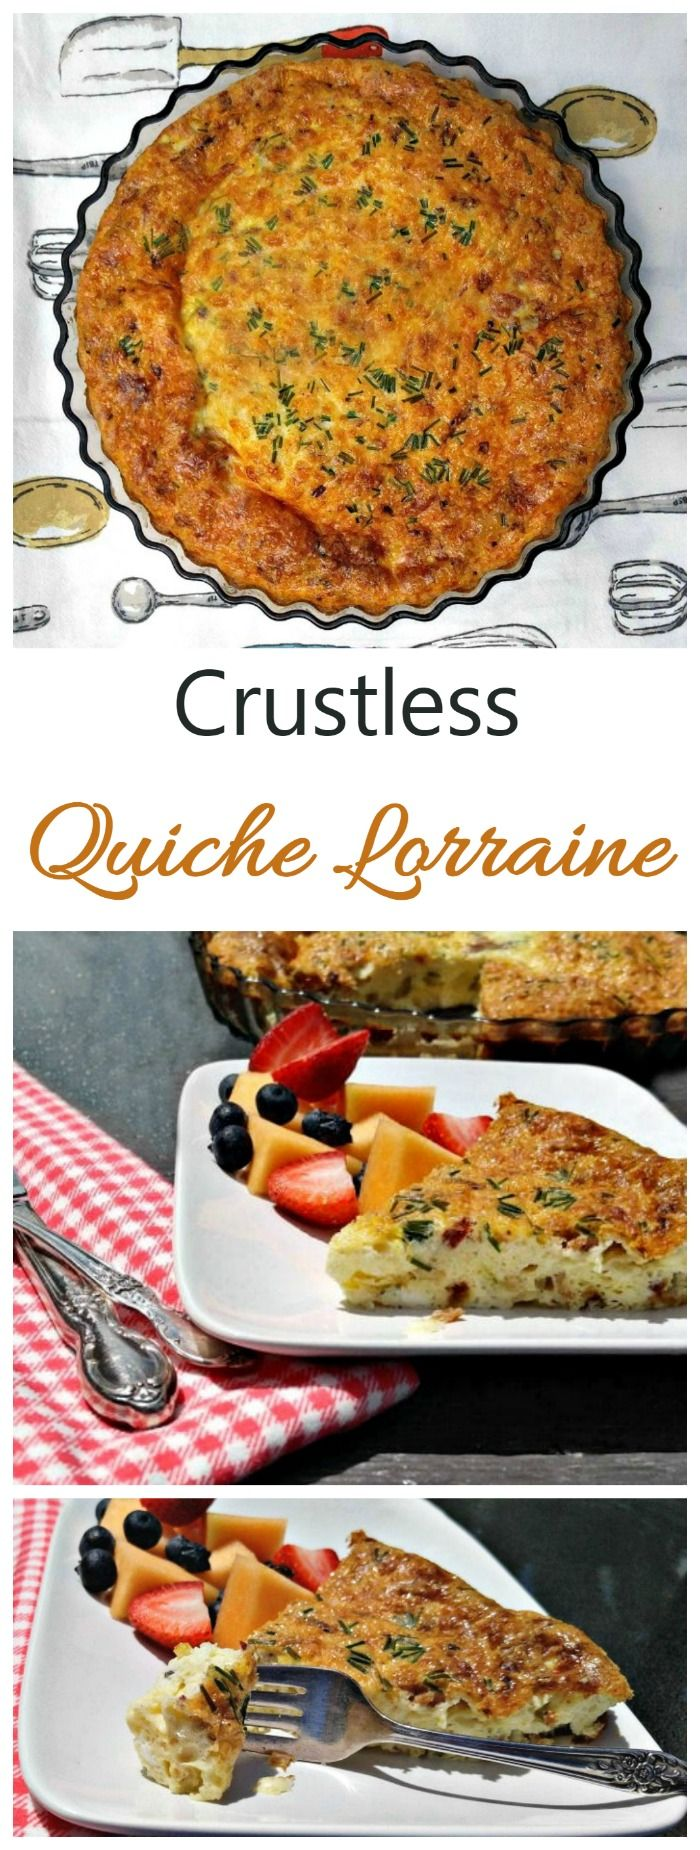 This crustless Quiche Lorraine is full of flavor but has been slimmed down to make it more calorie friendly.